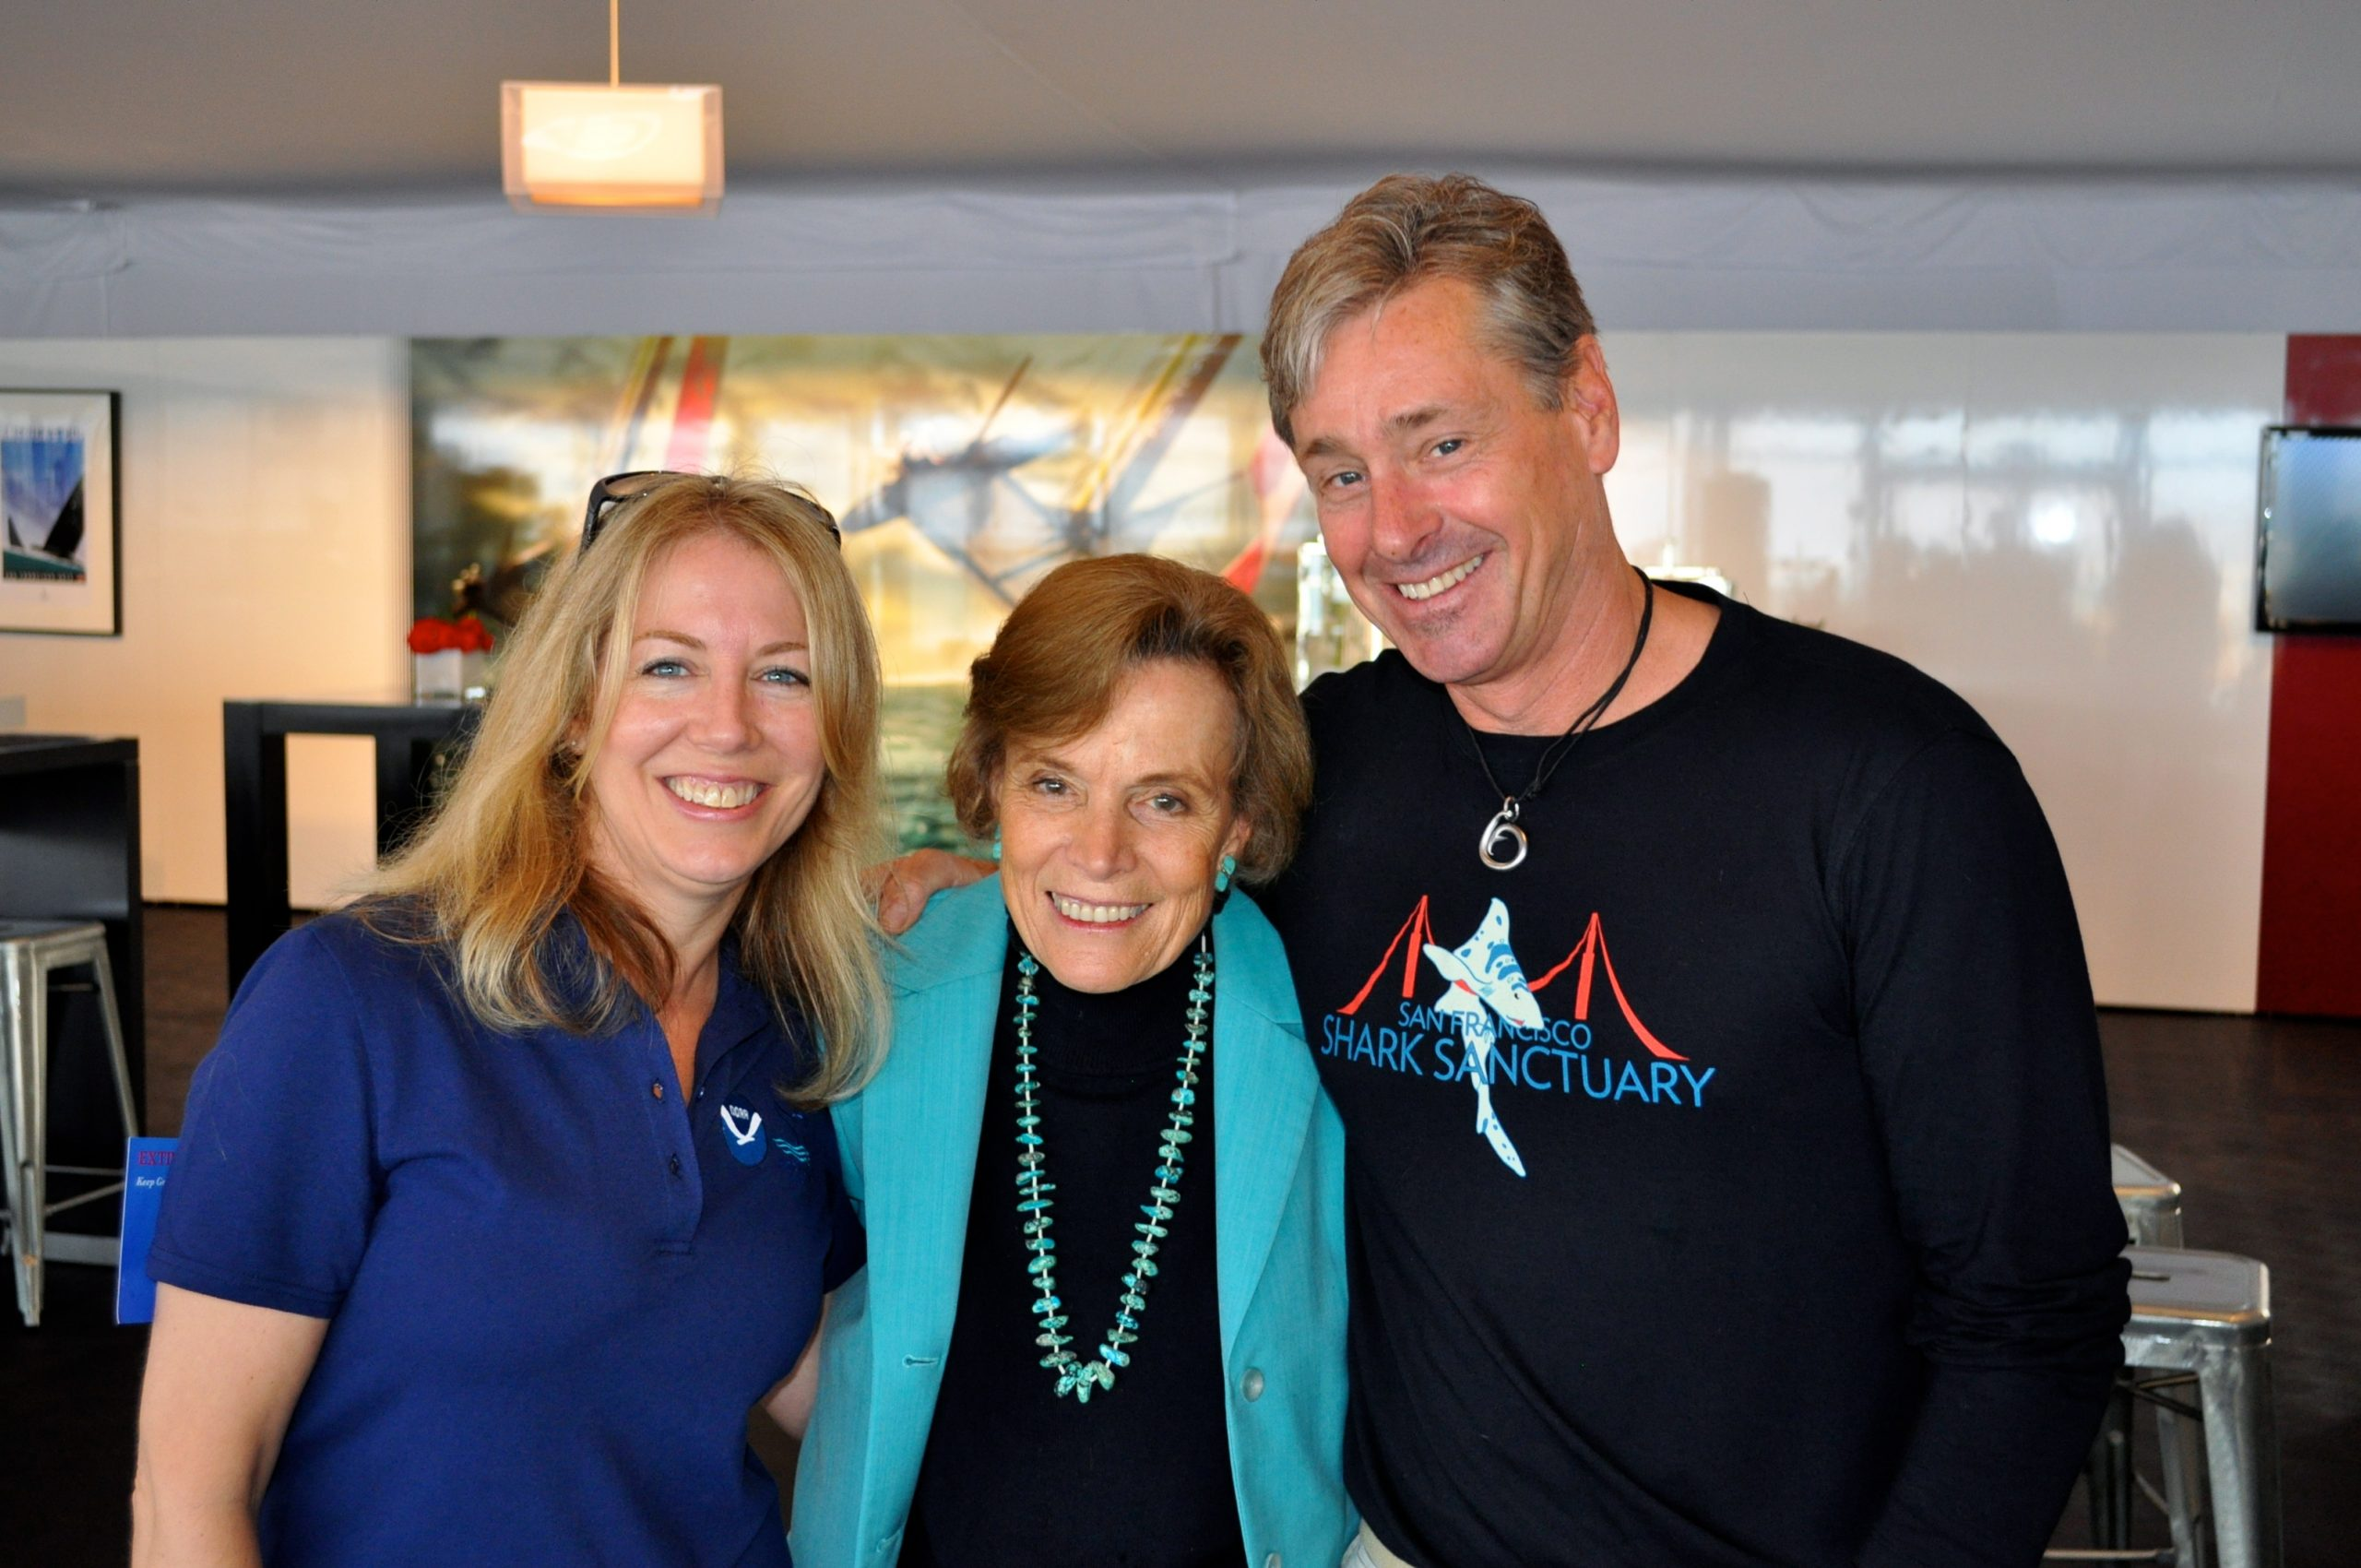 SylviaEarle and McGuire